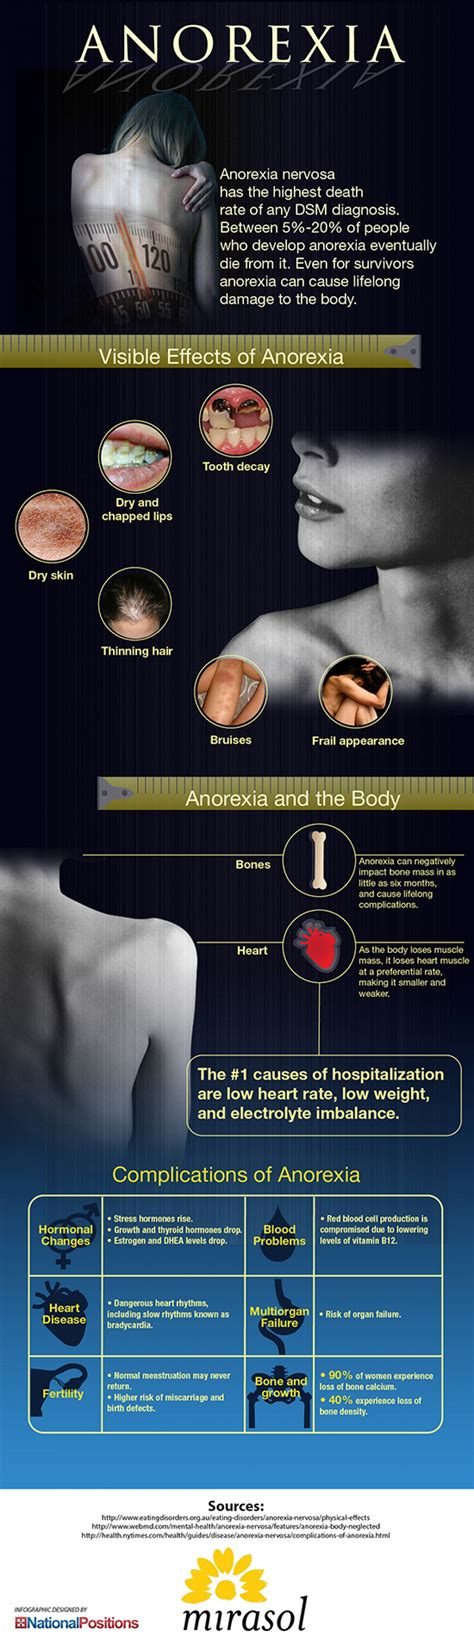 anorexias effects   body infographic naturalon